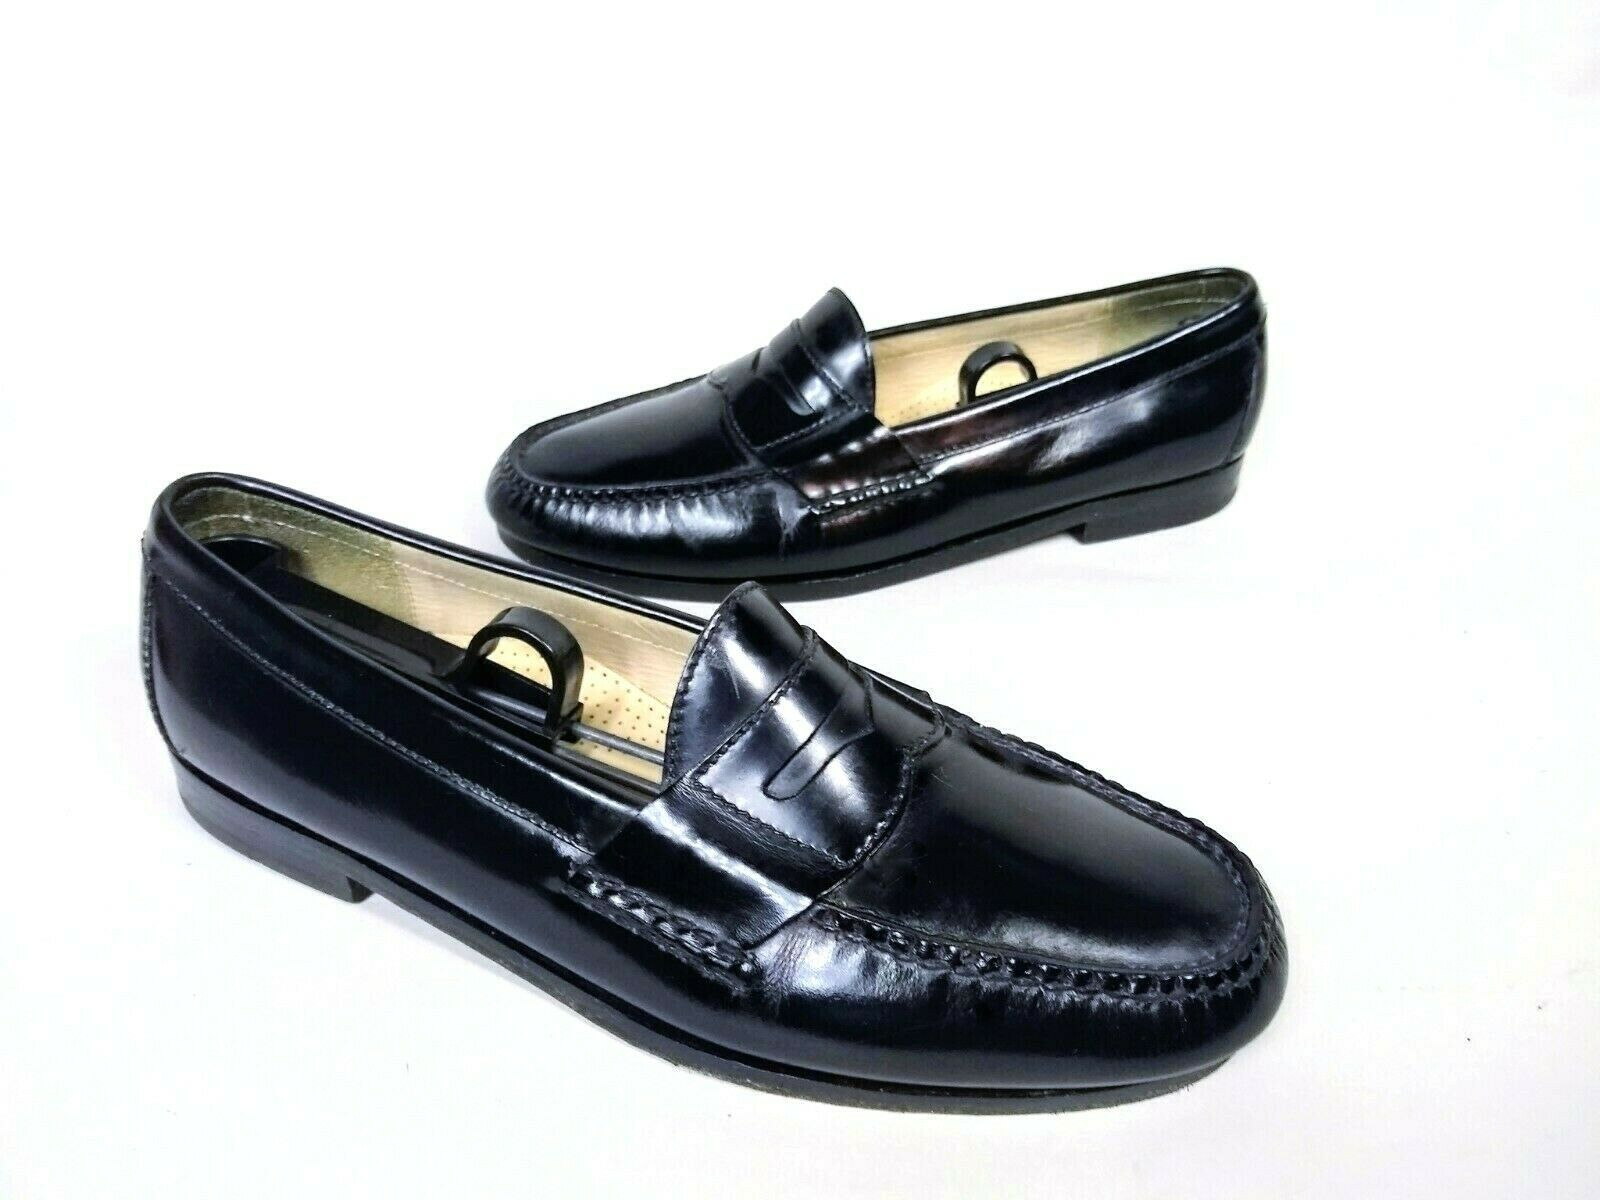 Cole Haan Mens Black Moc Toe Pinch Penny Leather Loafer Slip-on Shoes Size 9.5 image 4